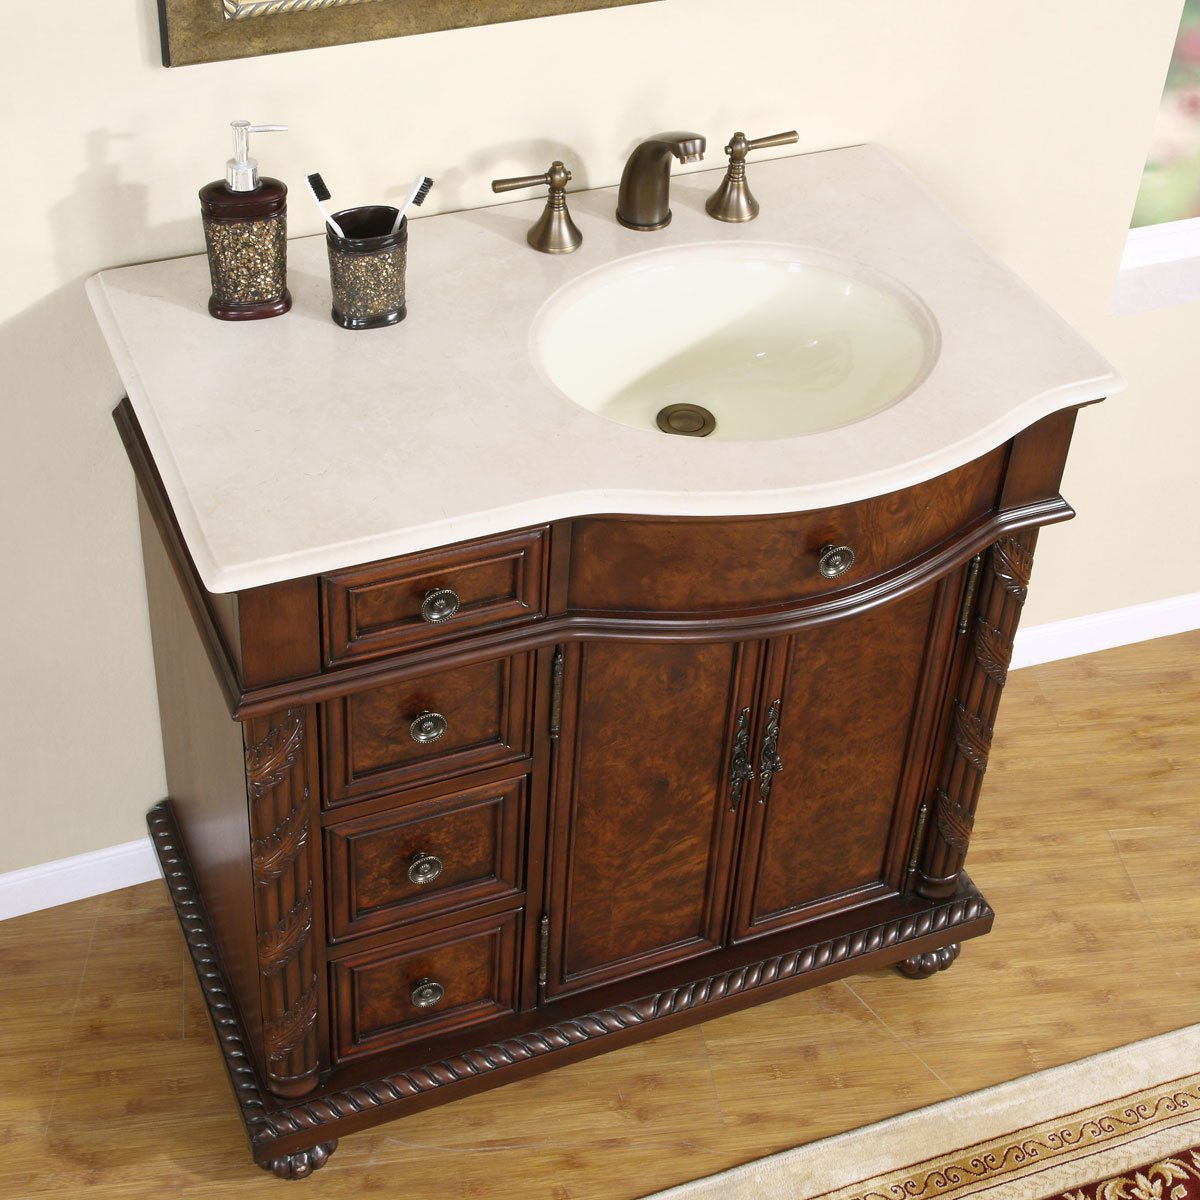 Silkroad exclusive 58 inch marble stone top bathroom vanity lavatory - Amazon Com Silkroad Exclusive Marble Top Single Off Center Sink Bathroom Vanity With Cabinet 36 Inch Home Kitchen